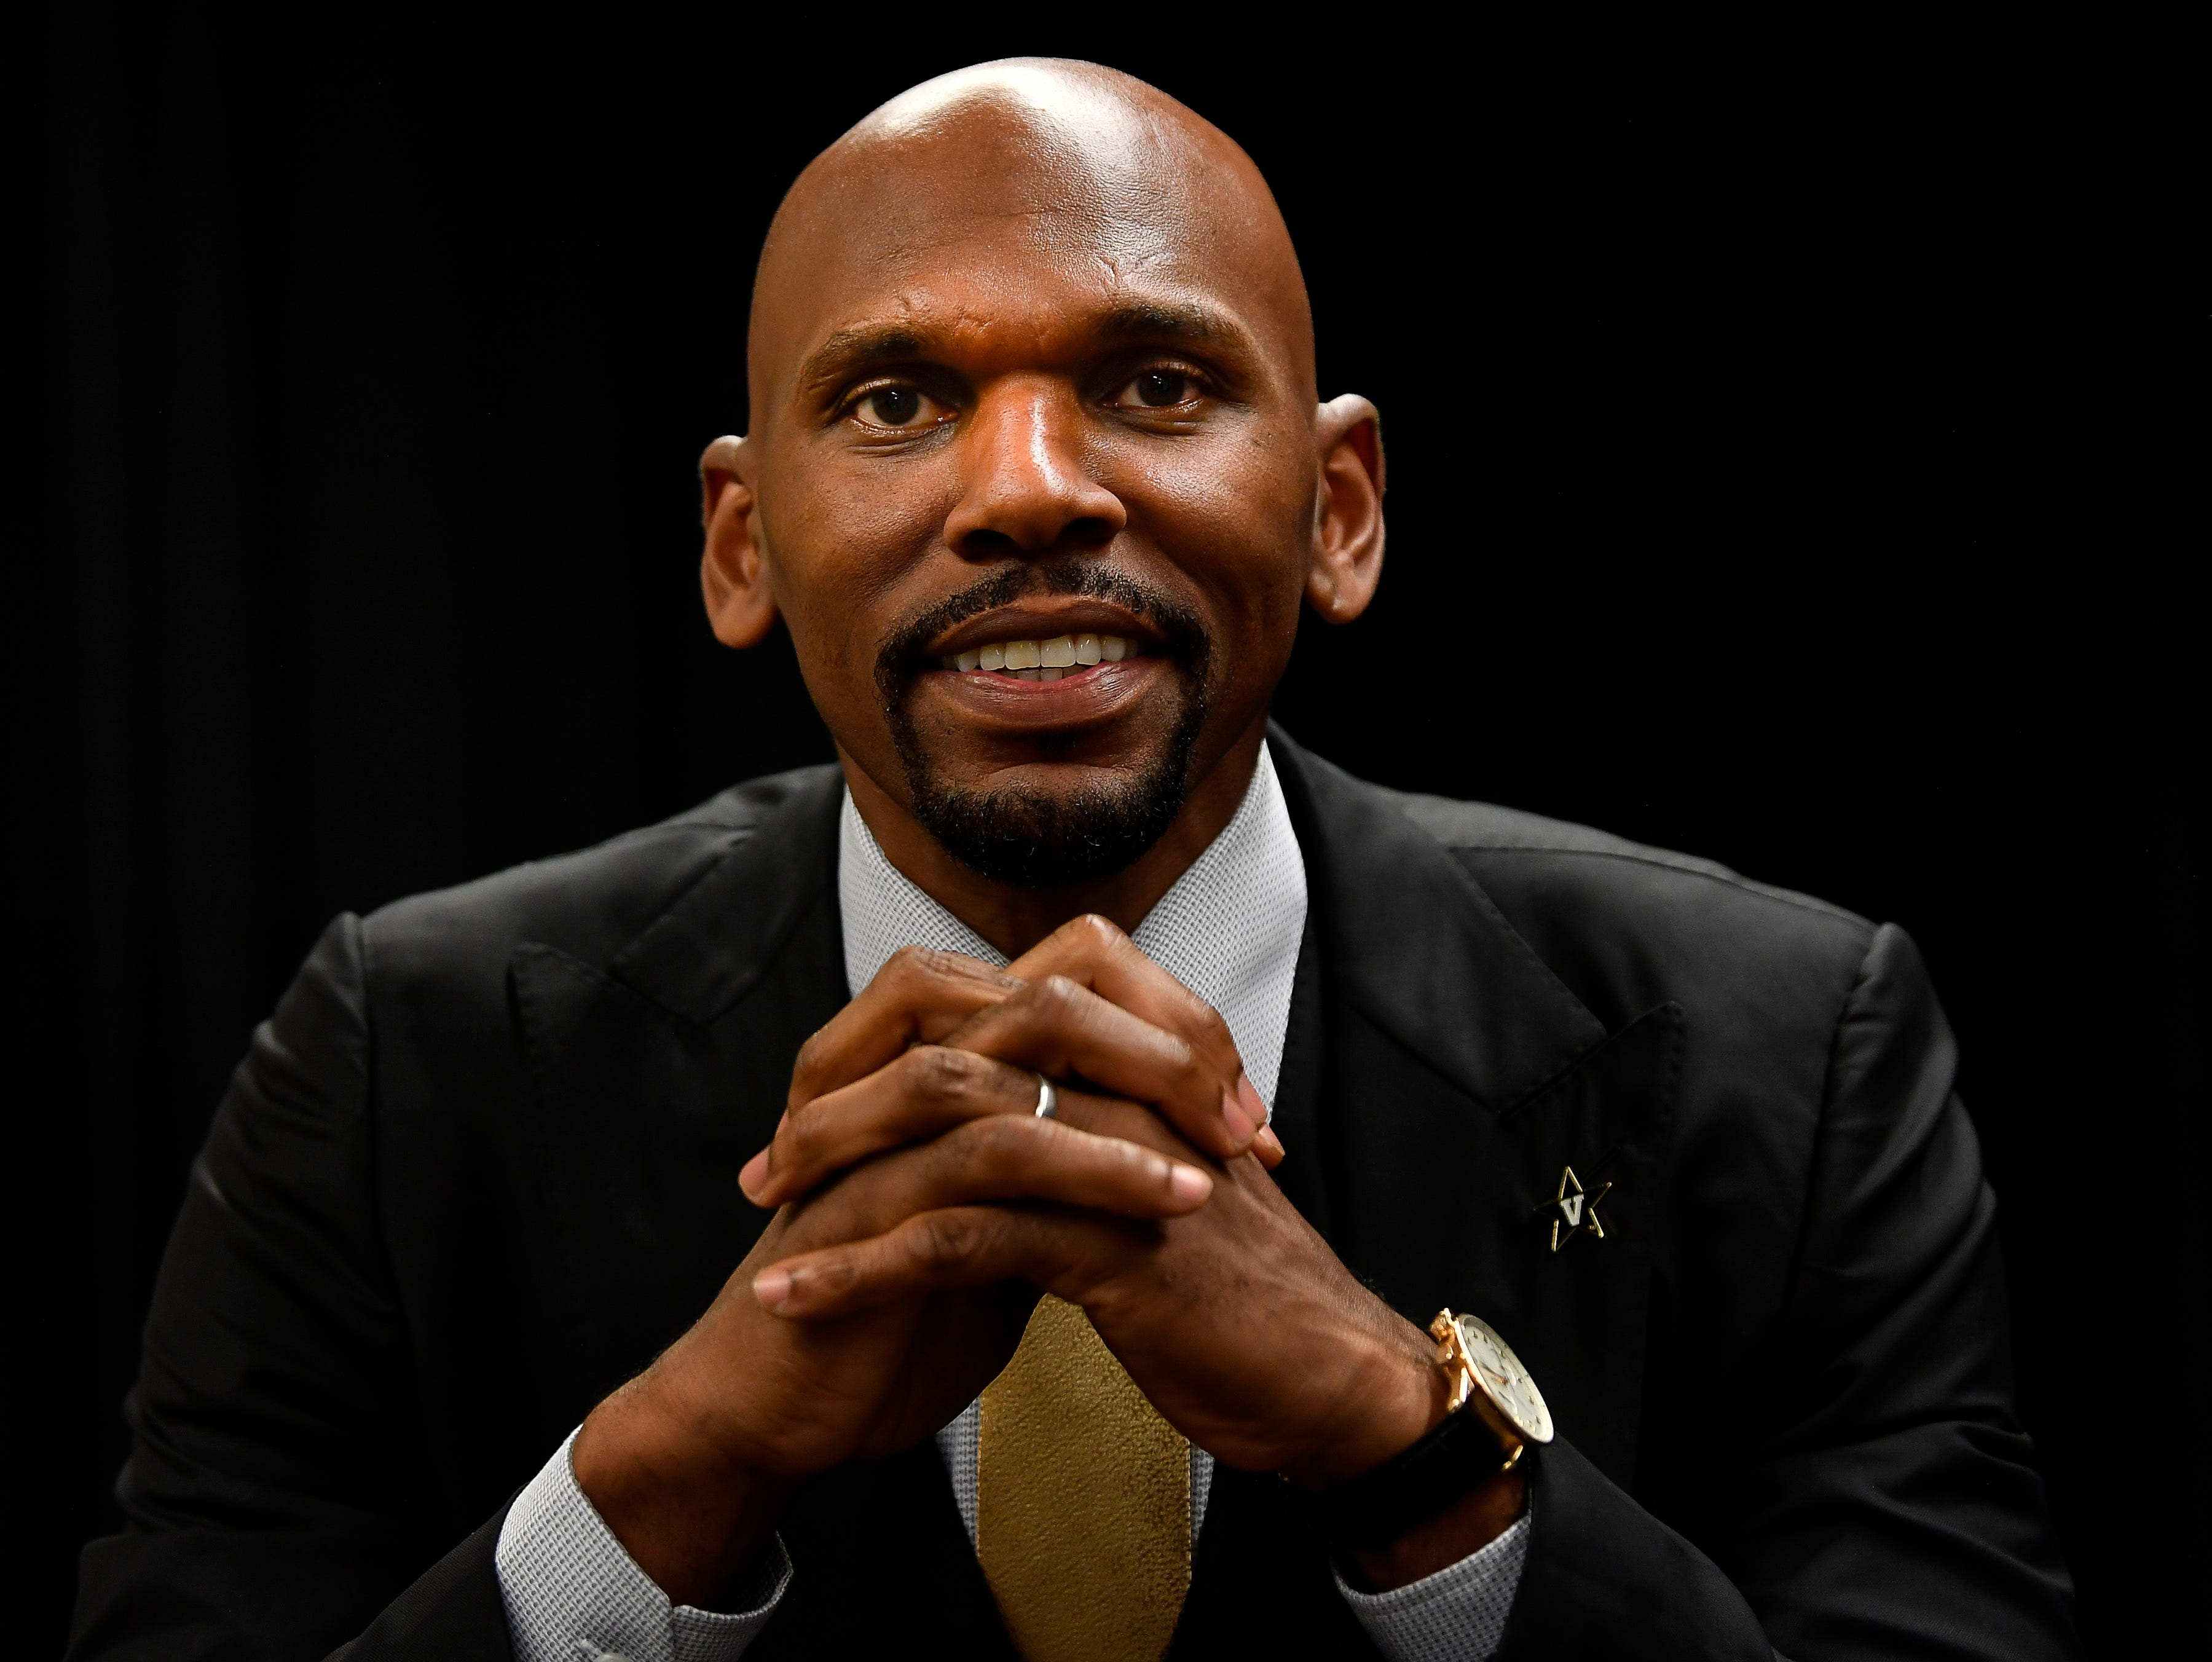 Jerry Stackhouse is introduced as the new Vanderbilt basketball coach at Memorial Gym Monday, April 8, 2019 in Nashville, Tenn.